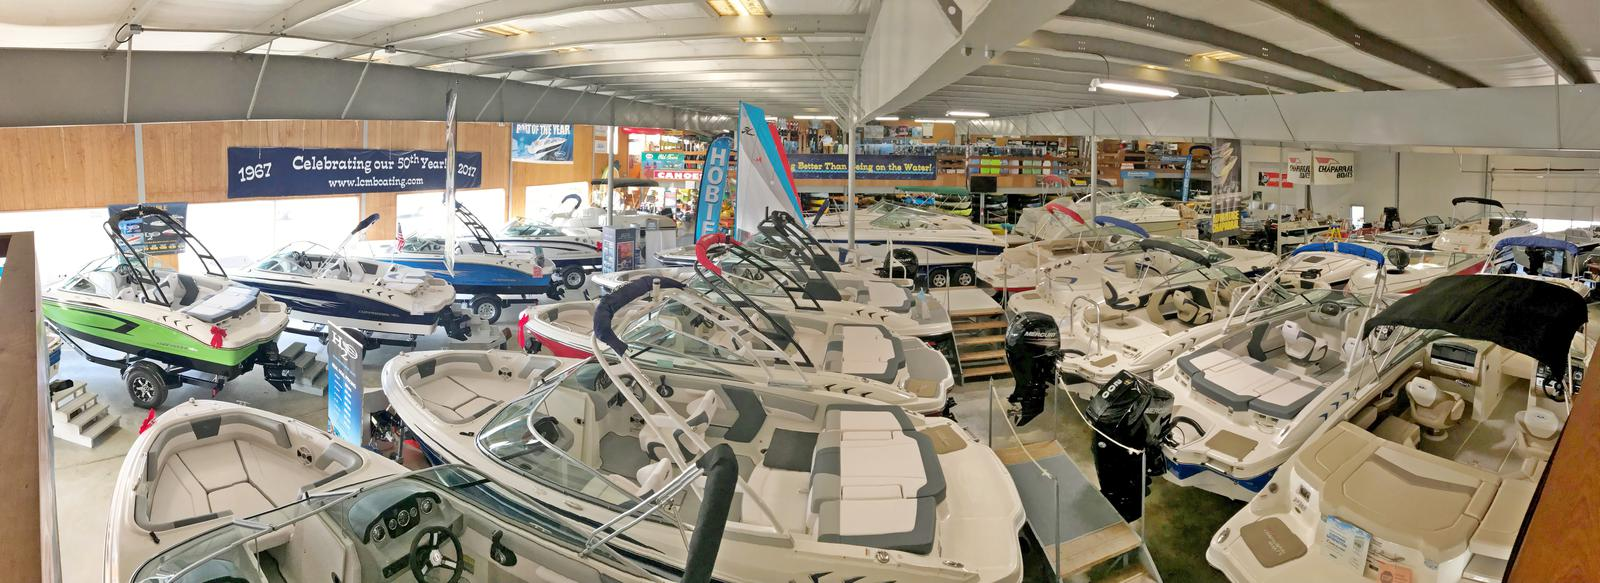 showroompanoramicview